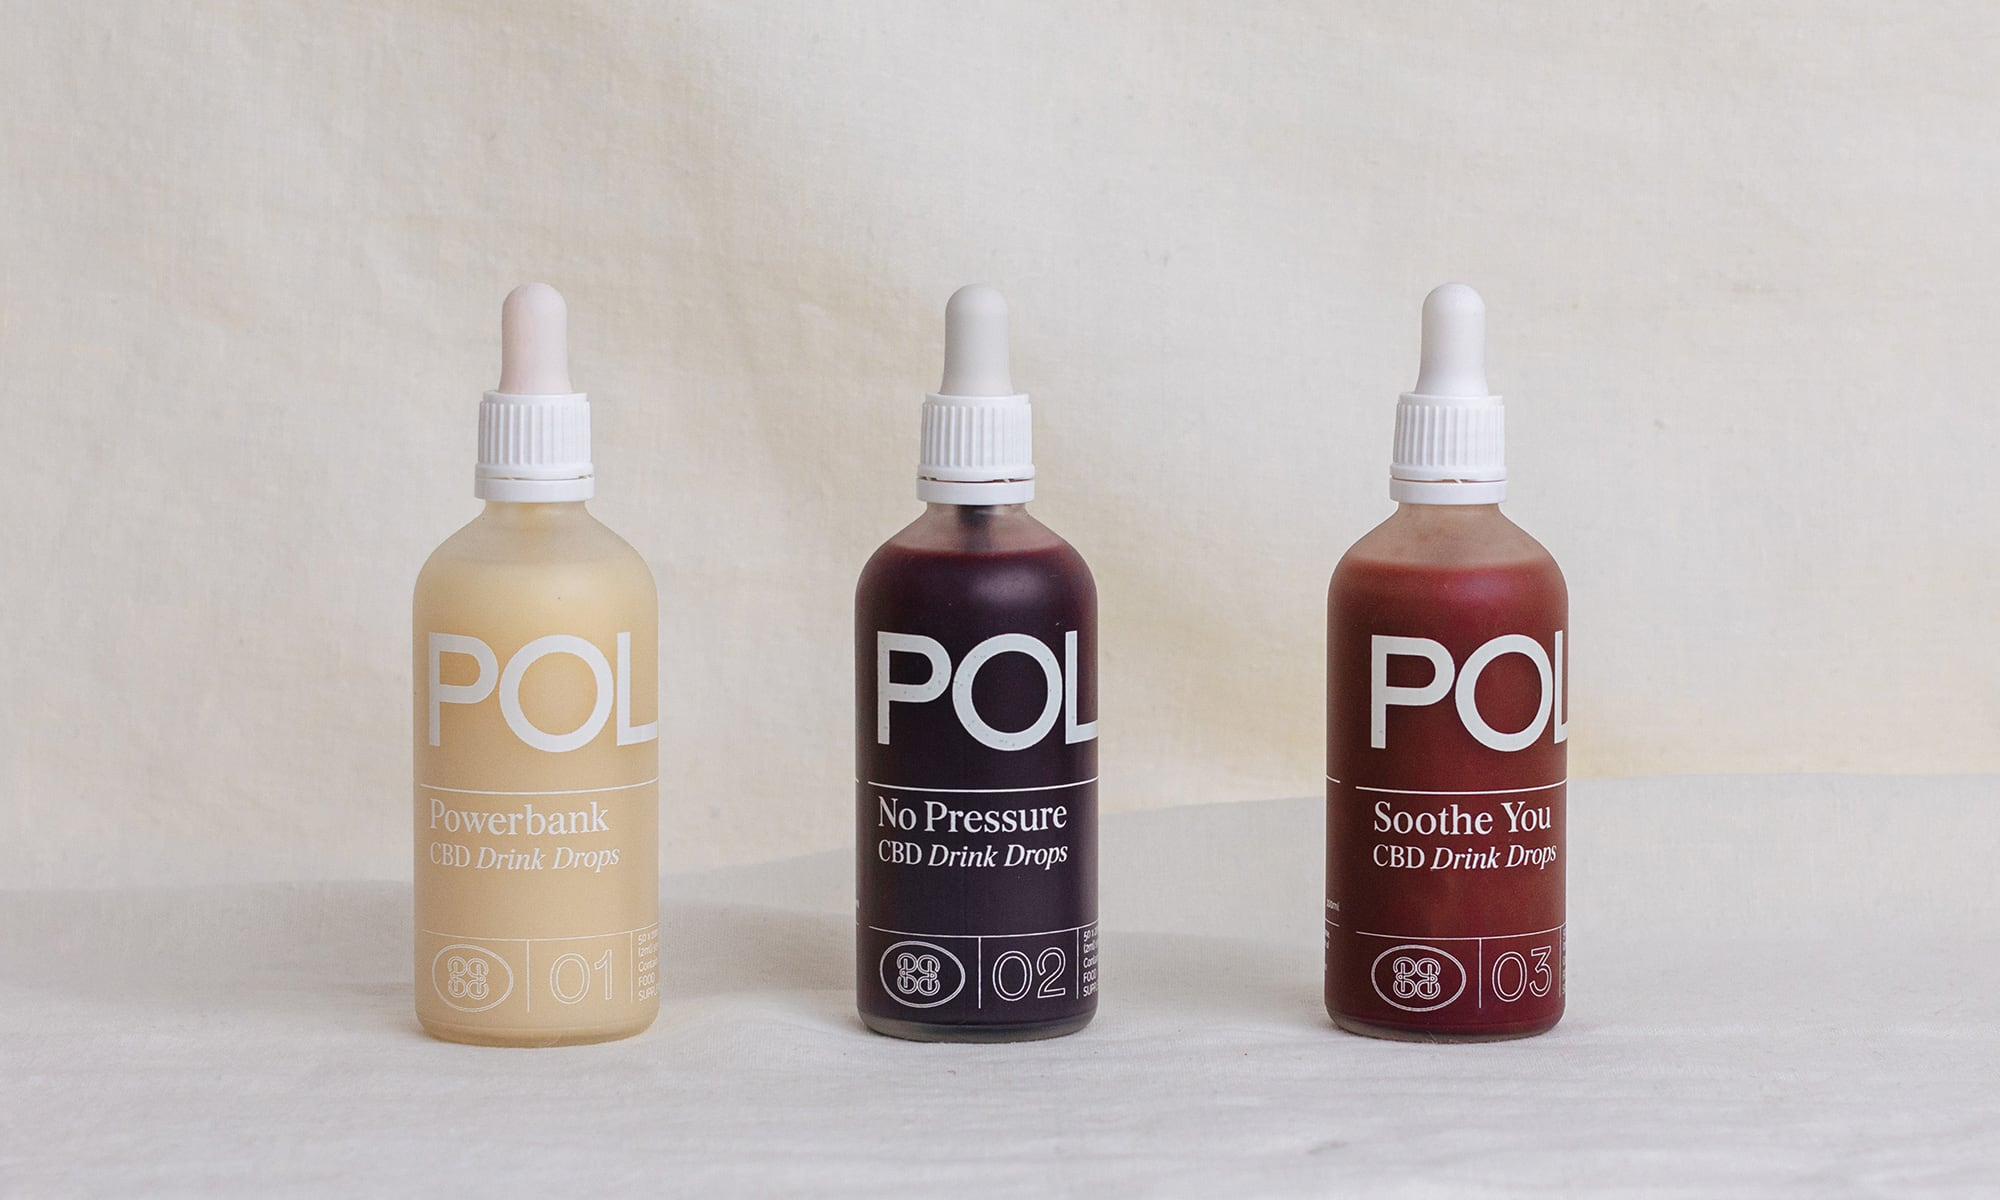 Pollen CBD drink drops for sale in the UK at Roots